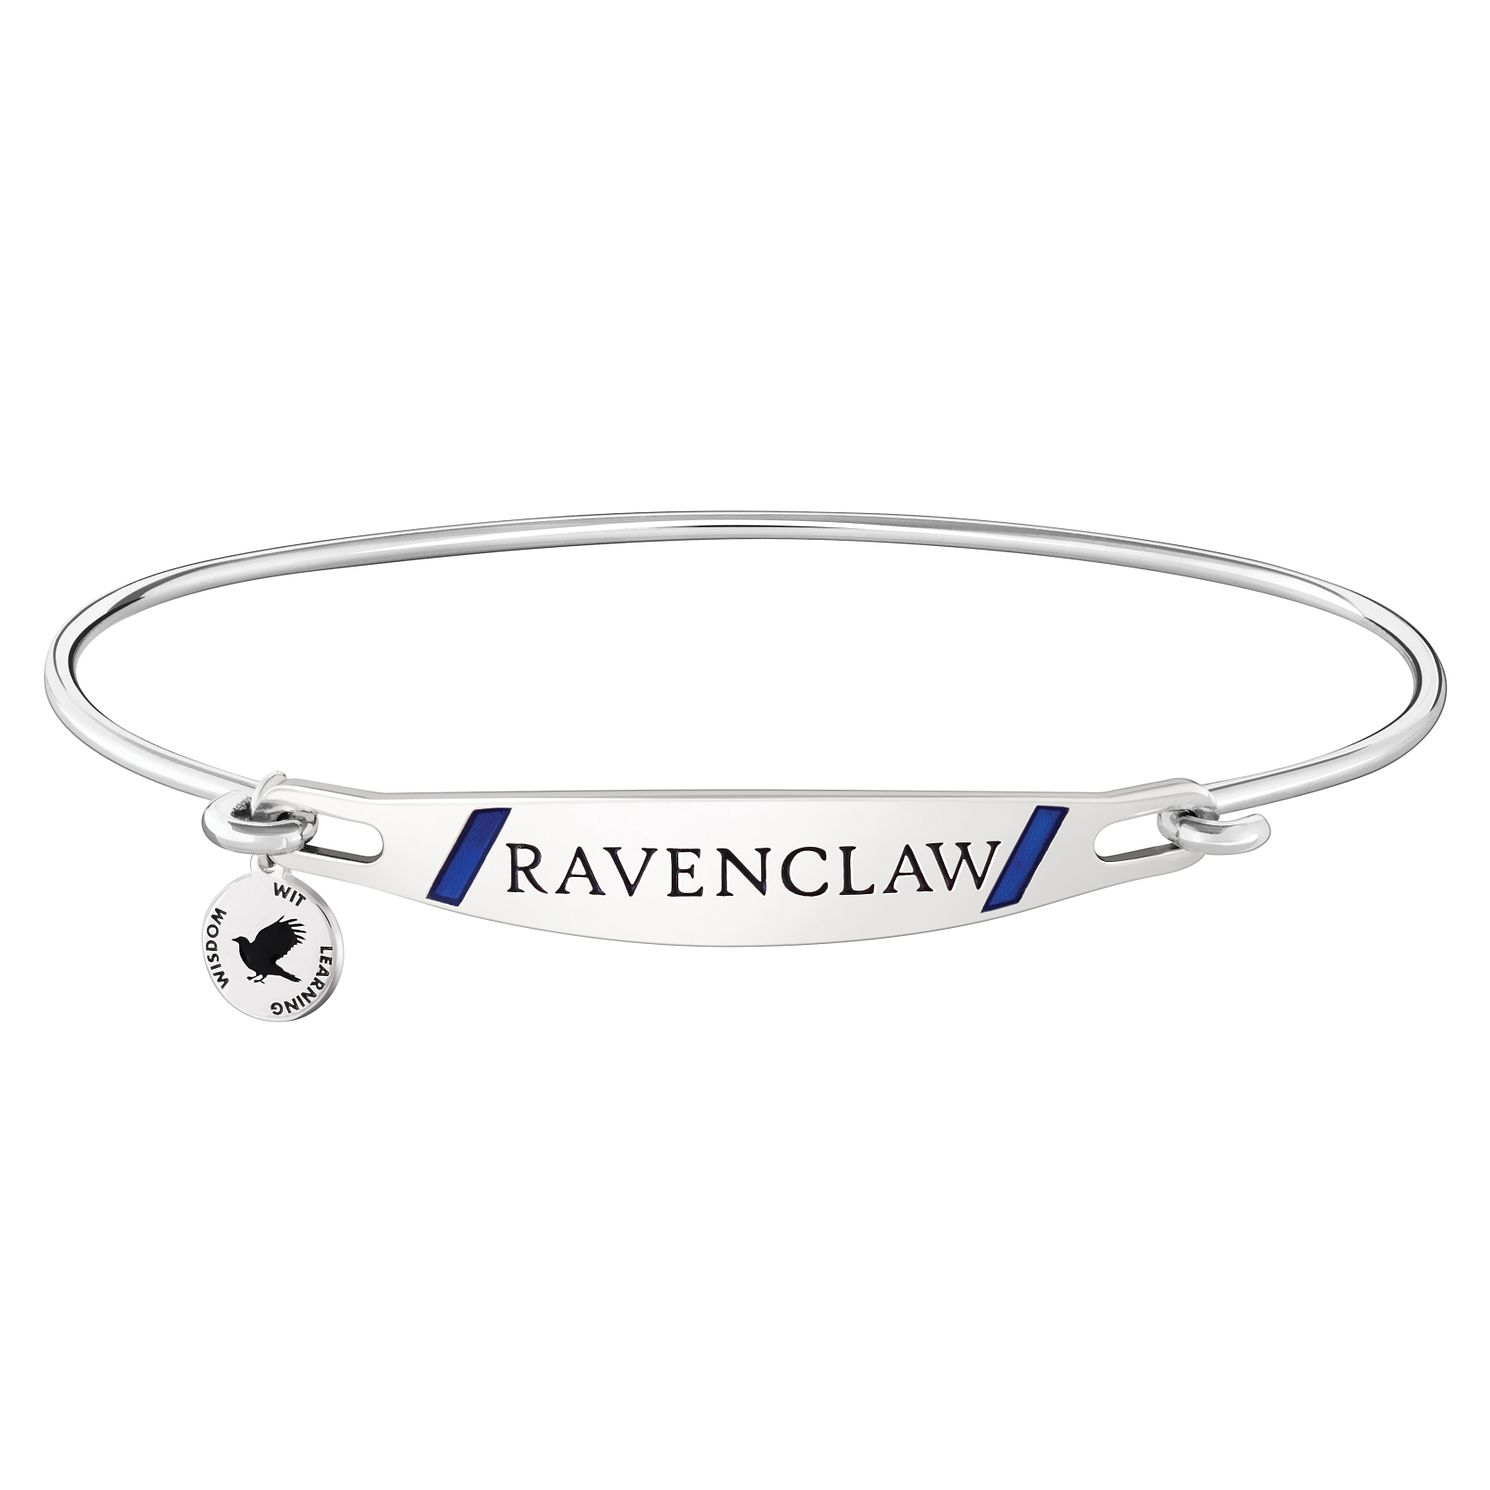 Chamilia Harry Potter Ravenclaw Bangle - Blue Enamel, M/L - Product number 3172236